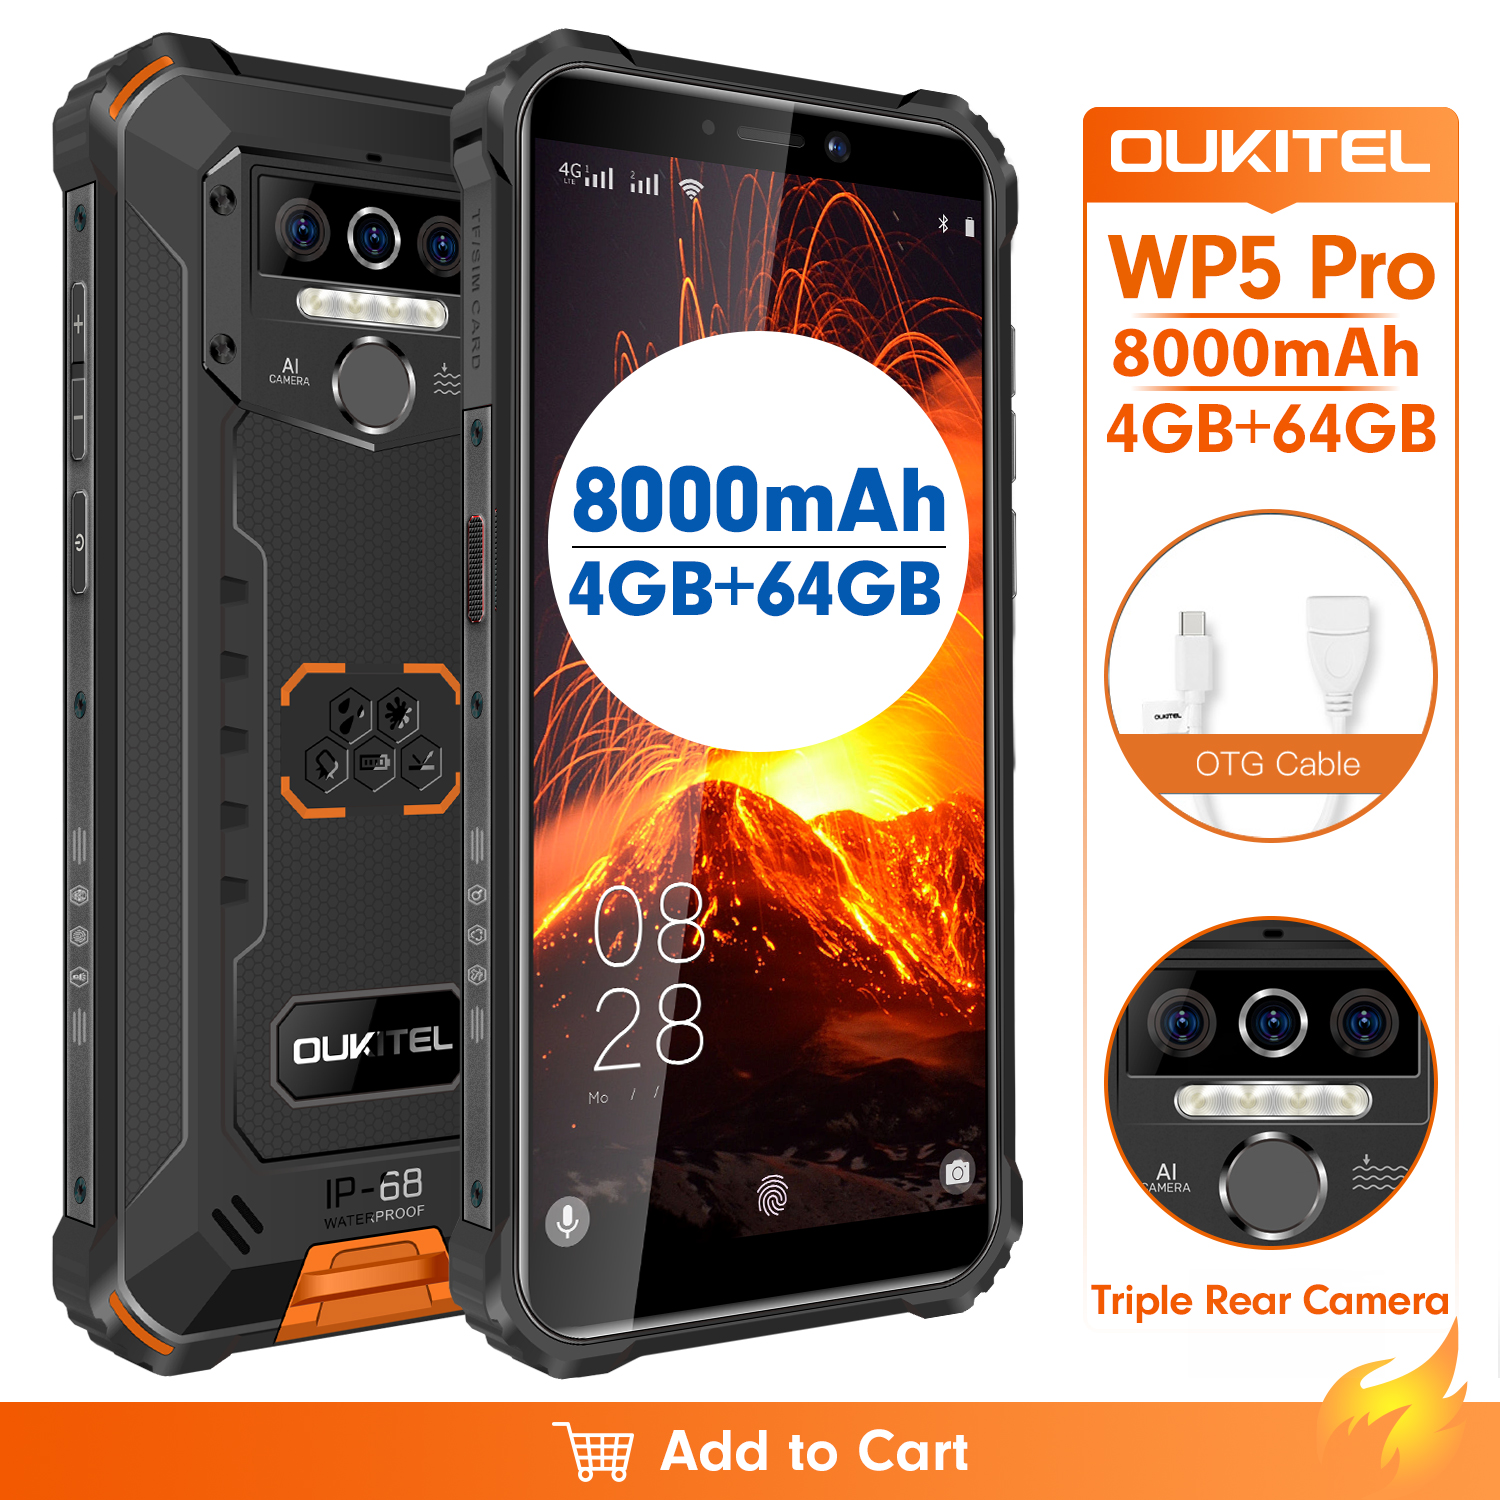 OUKITEL Wp5-Pro IP68 64GB 4gbb LTE/GSM/WCDMA Quick Charge 2.0 Gorilla glass/Bluetooth 5.0/5g wi-fi